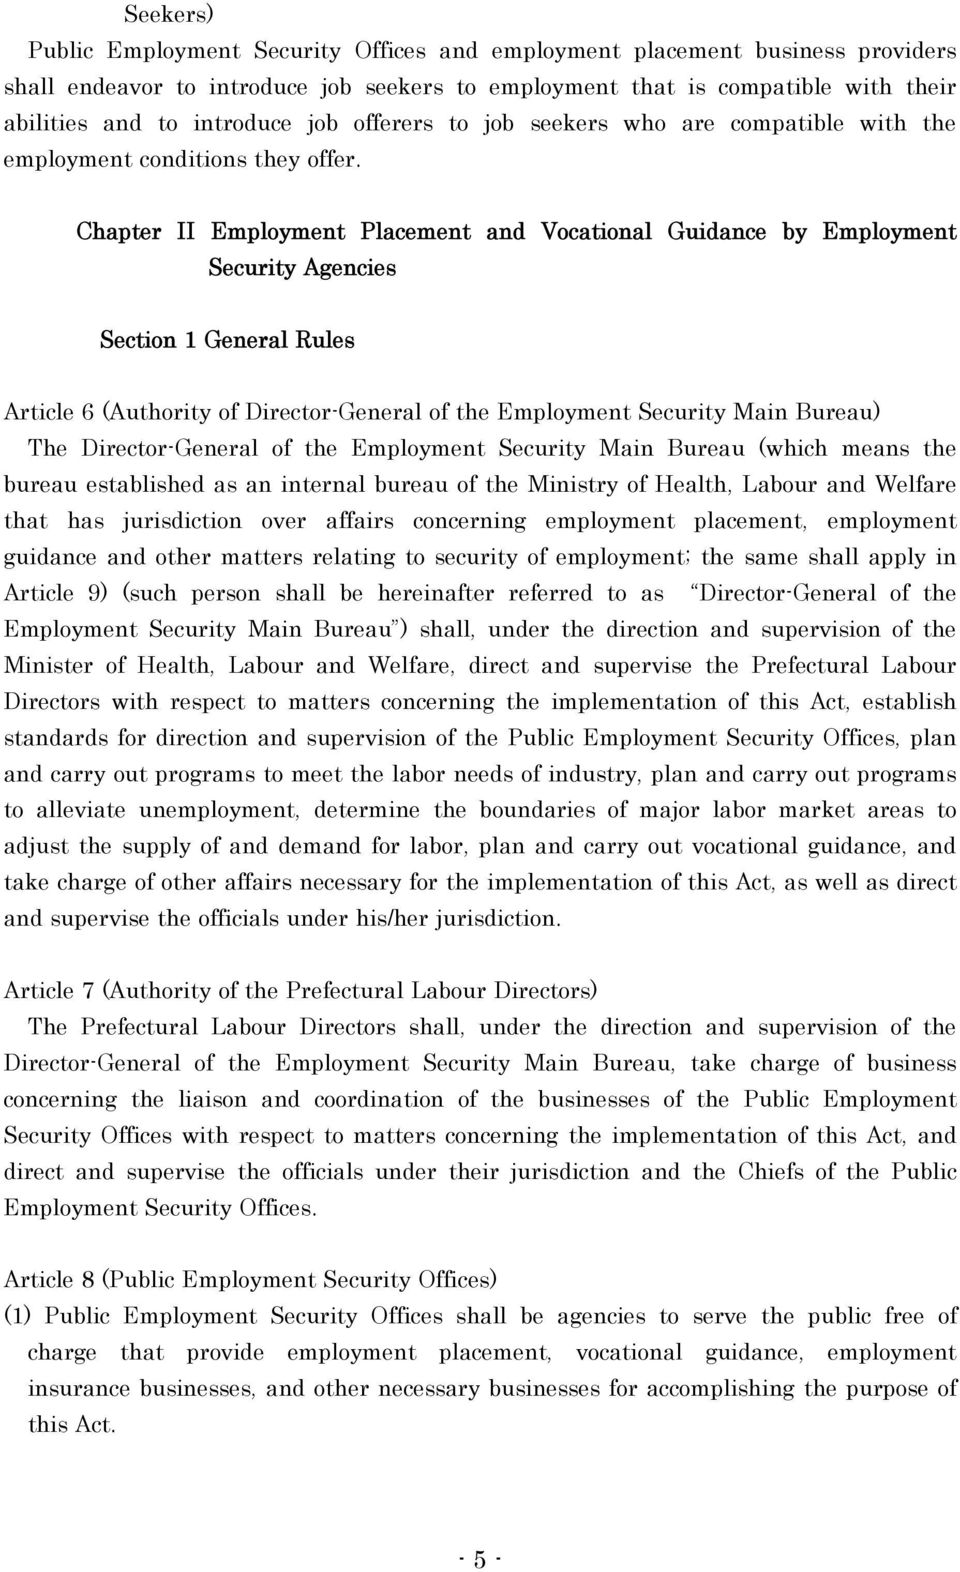 Chapter II Employment Placement and Vocational Guidance by Employment Security Agencies Section 1 General Rules Article 6 (Authority of Director-General of the Employment Security Main Bureau) The